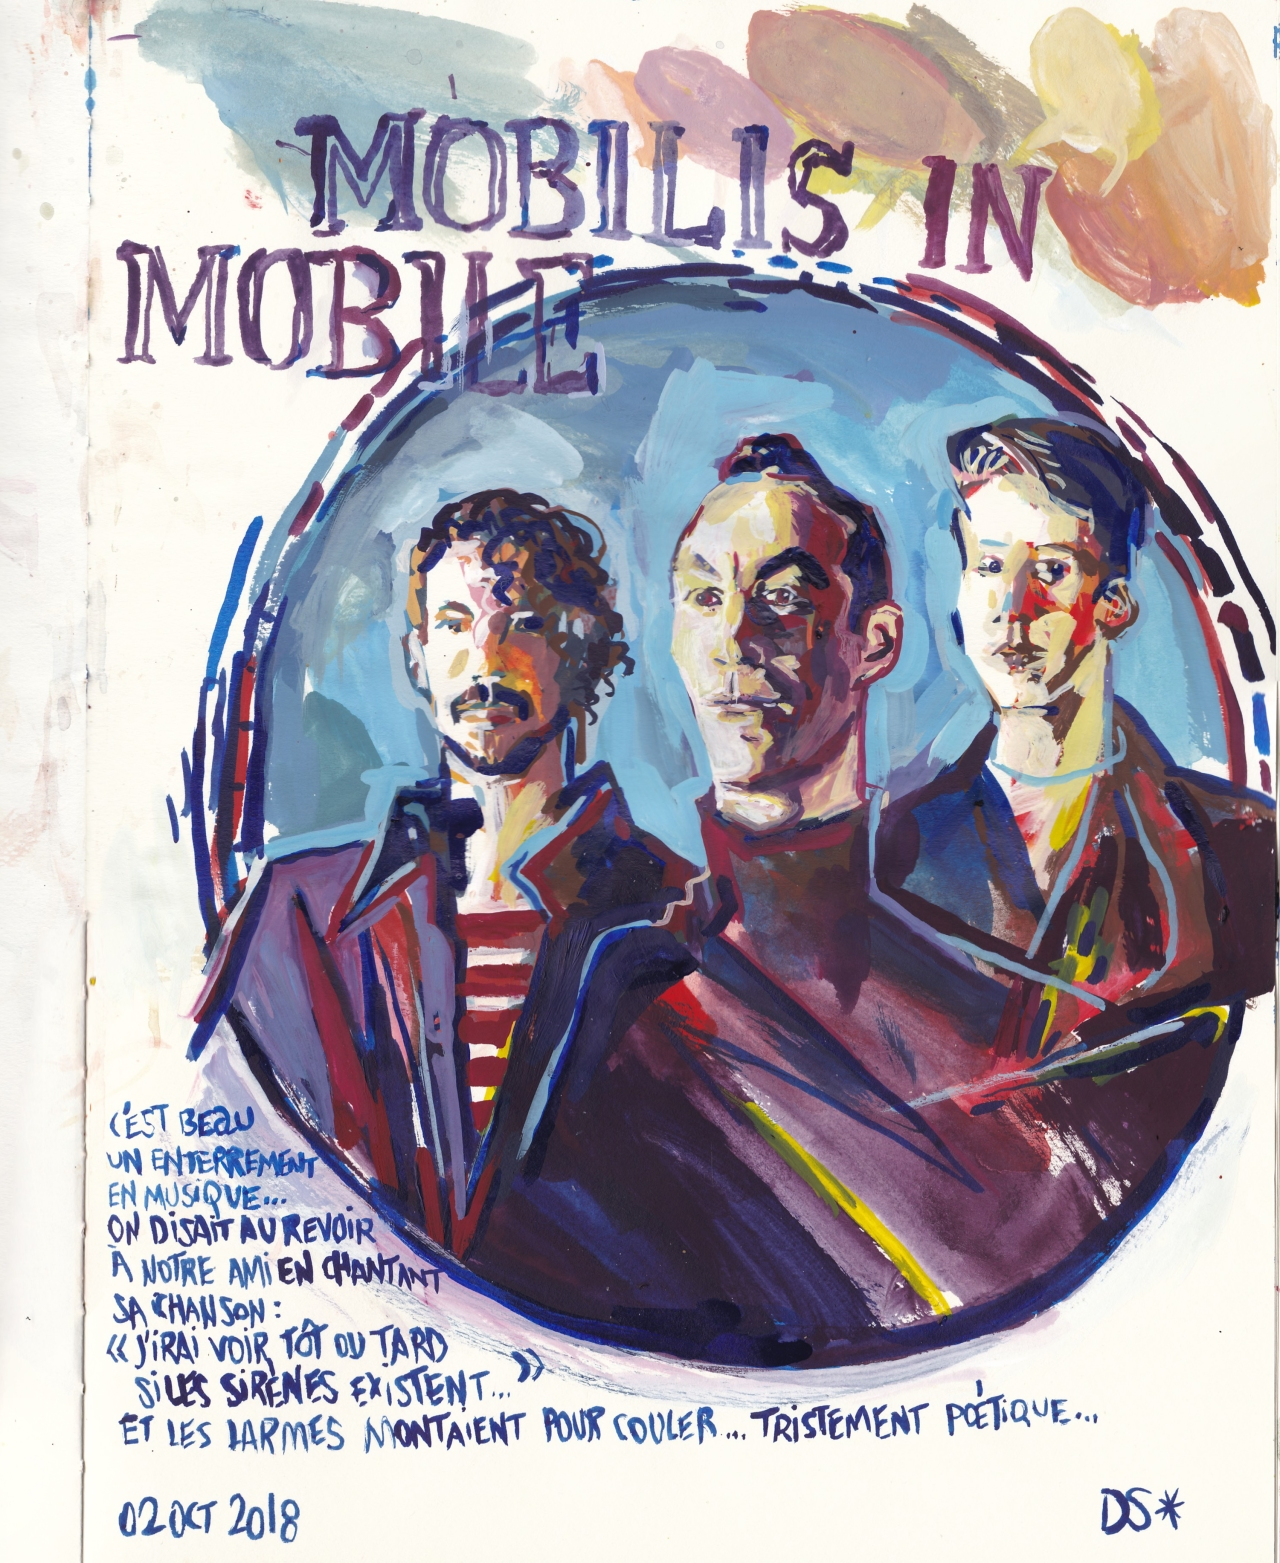 Mobilis_in_mobile